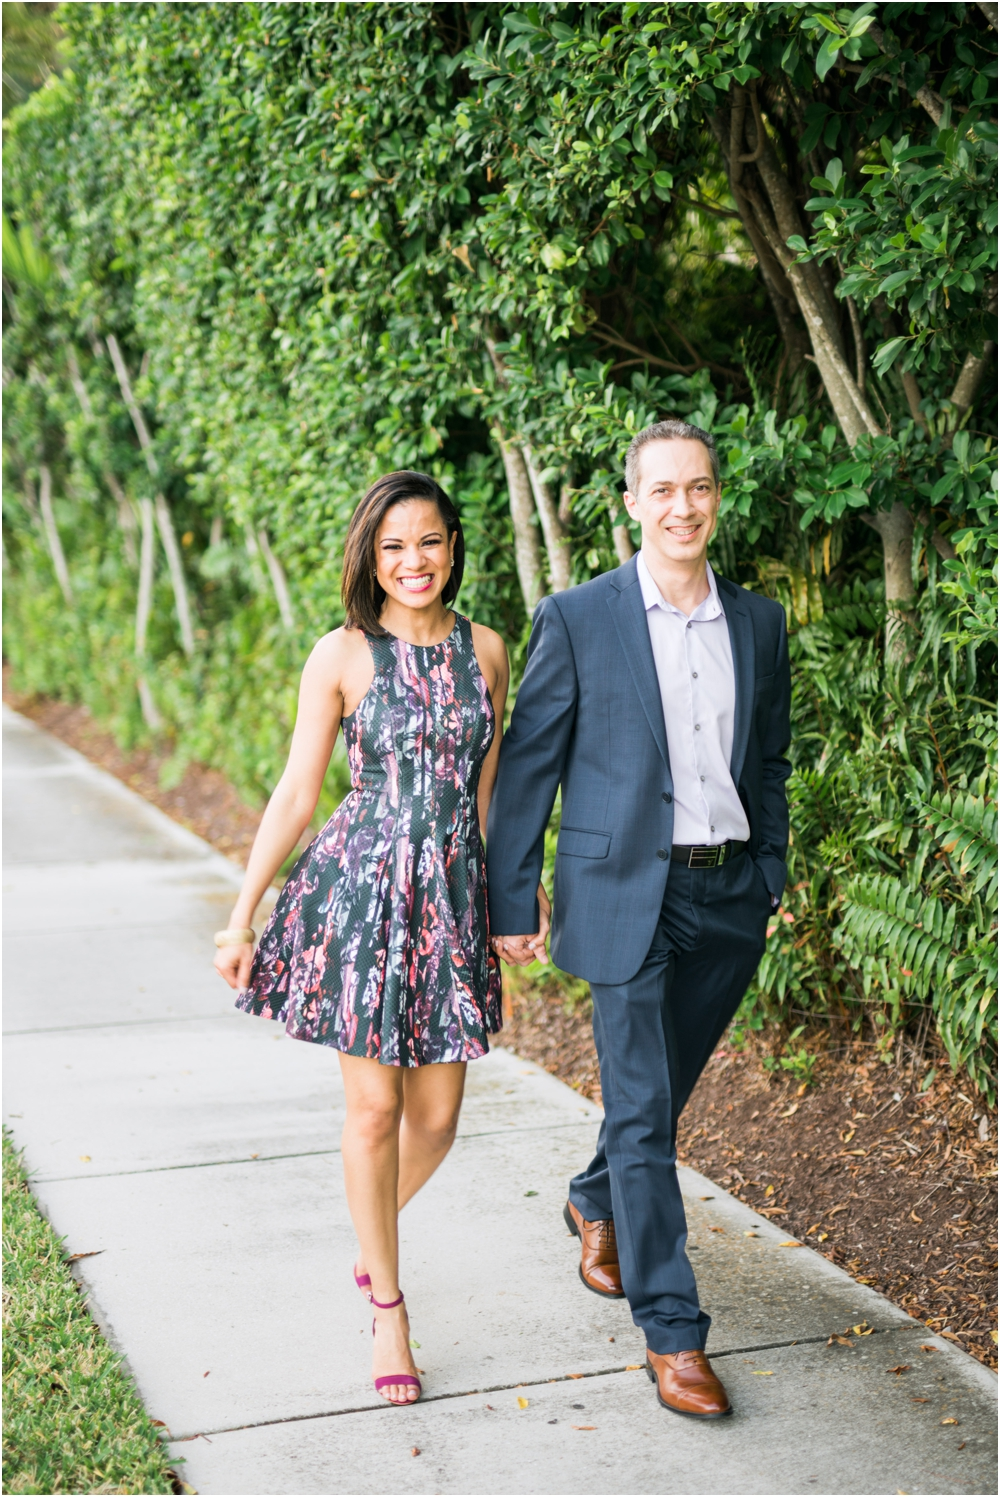 Naples_Wedding_Photographer_Florida_Engagement_Session_1223.jpg